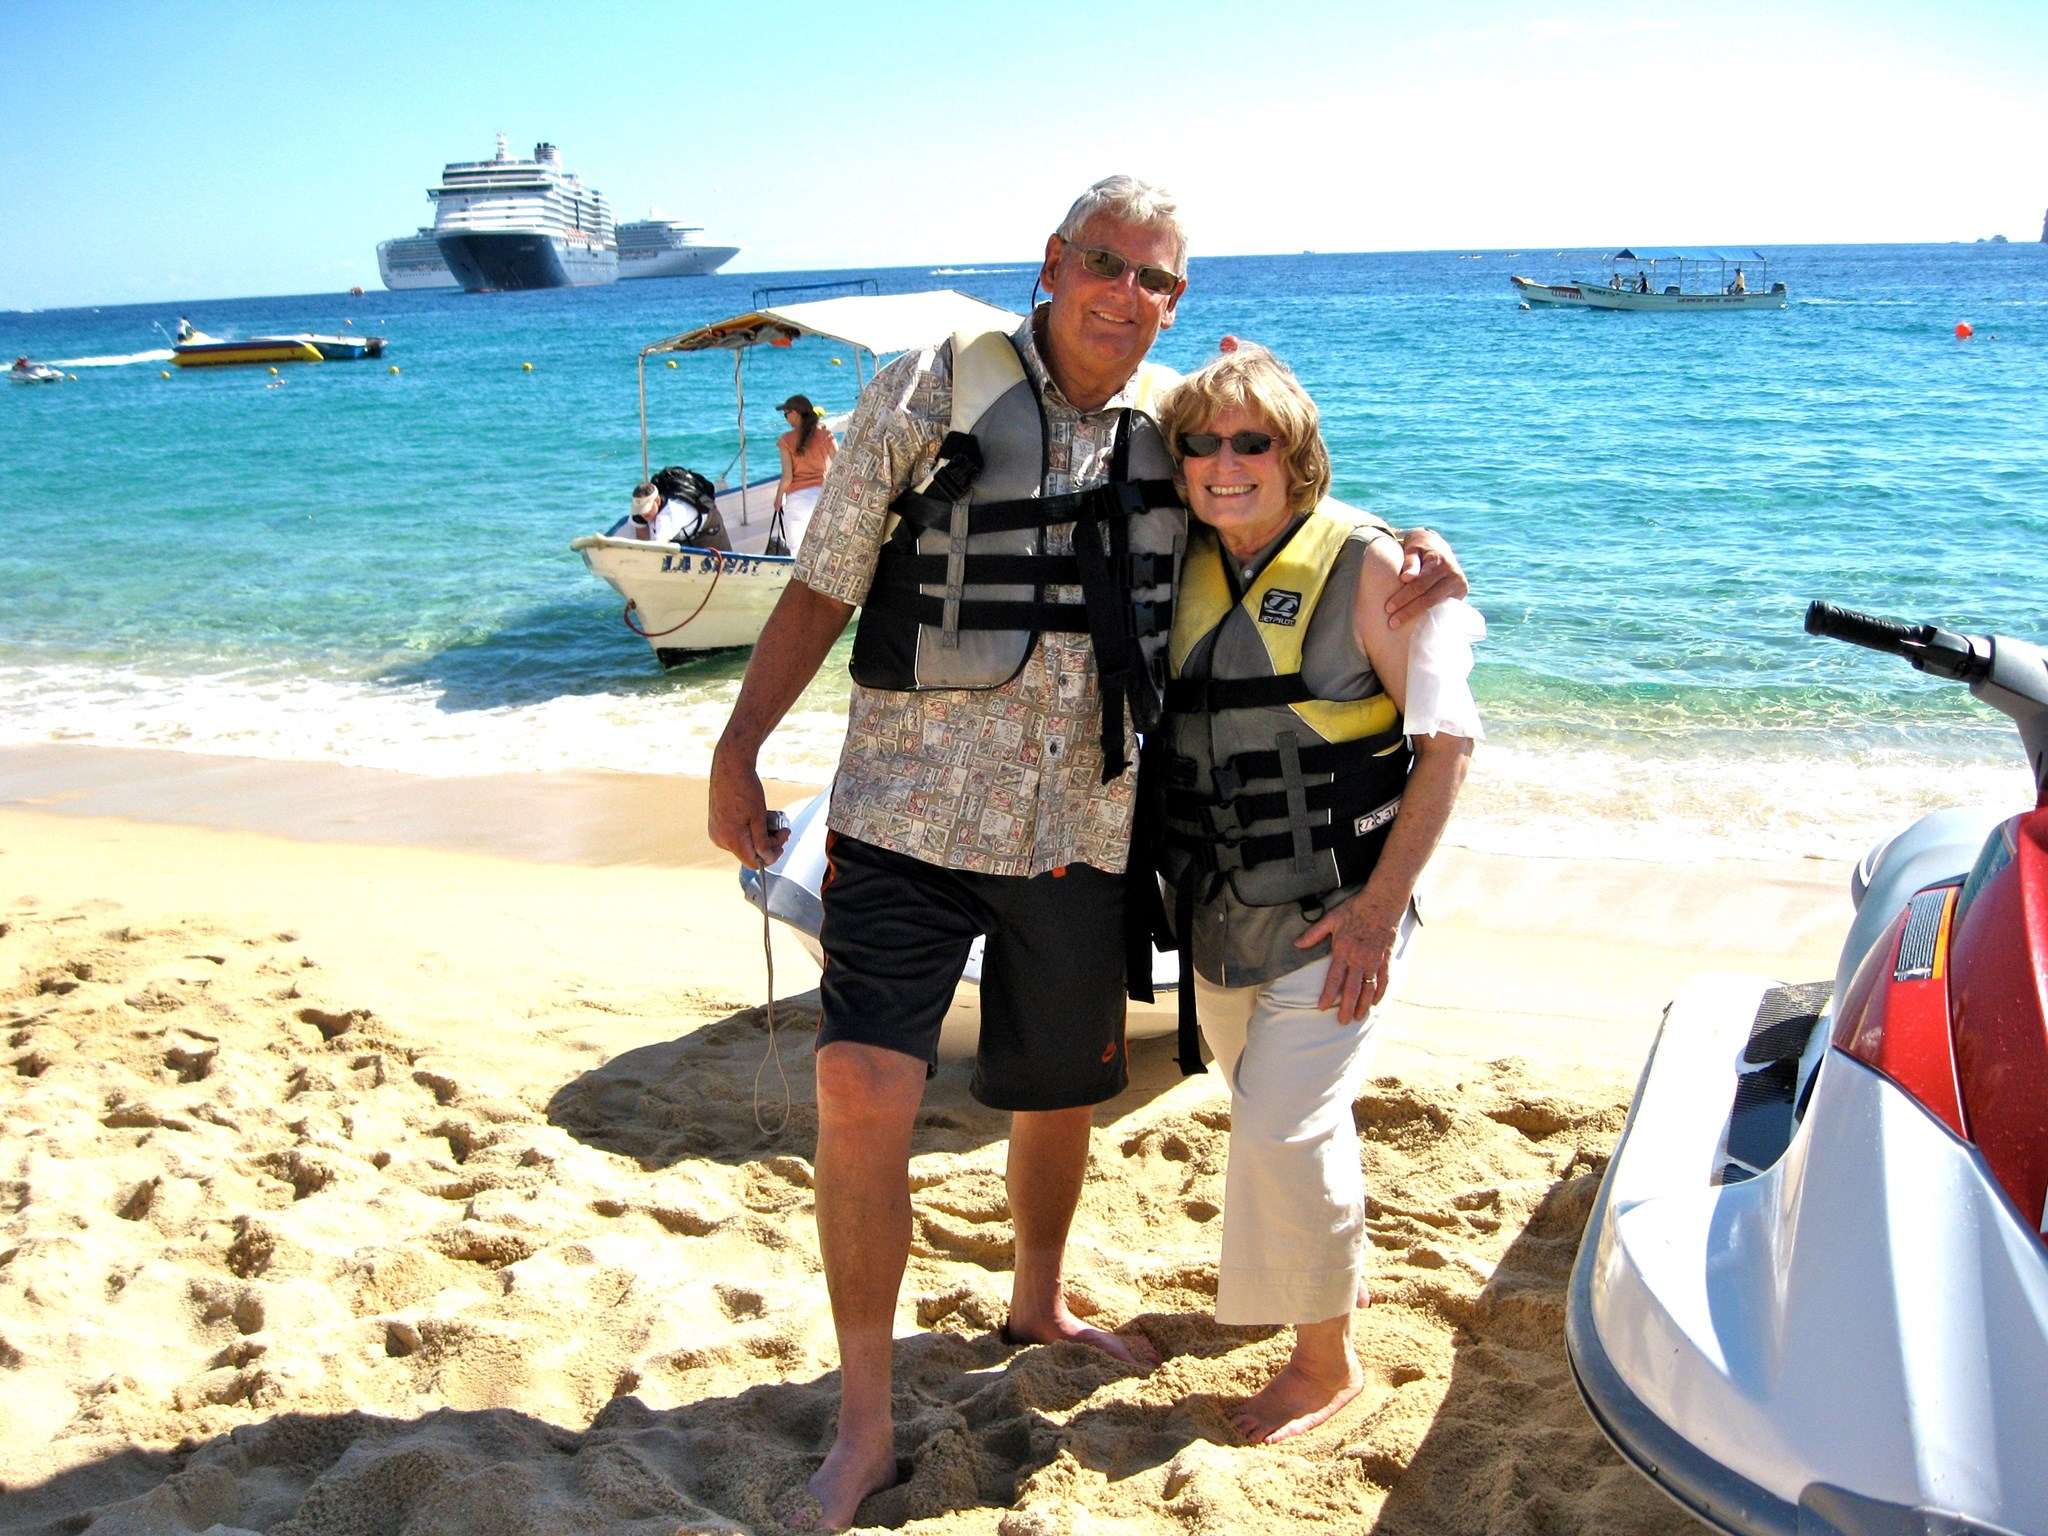 Lou and Susie jetskiing in Cabo San Lucas